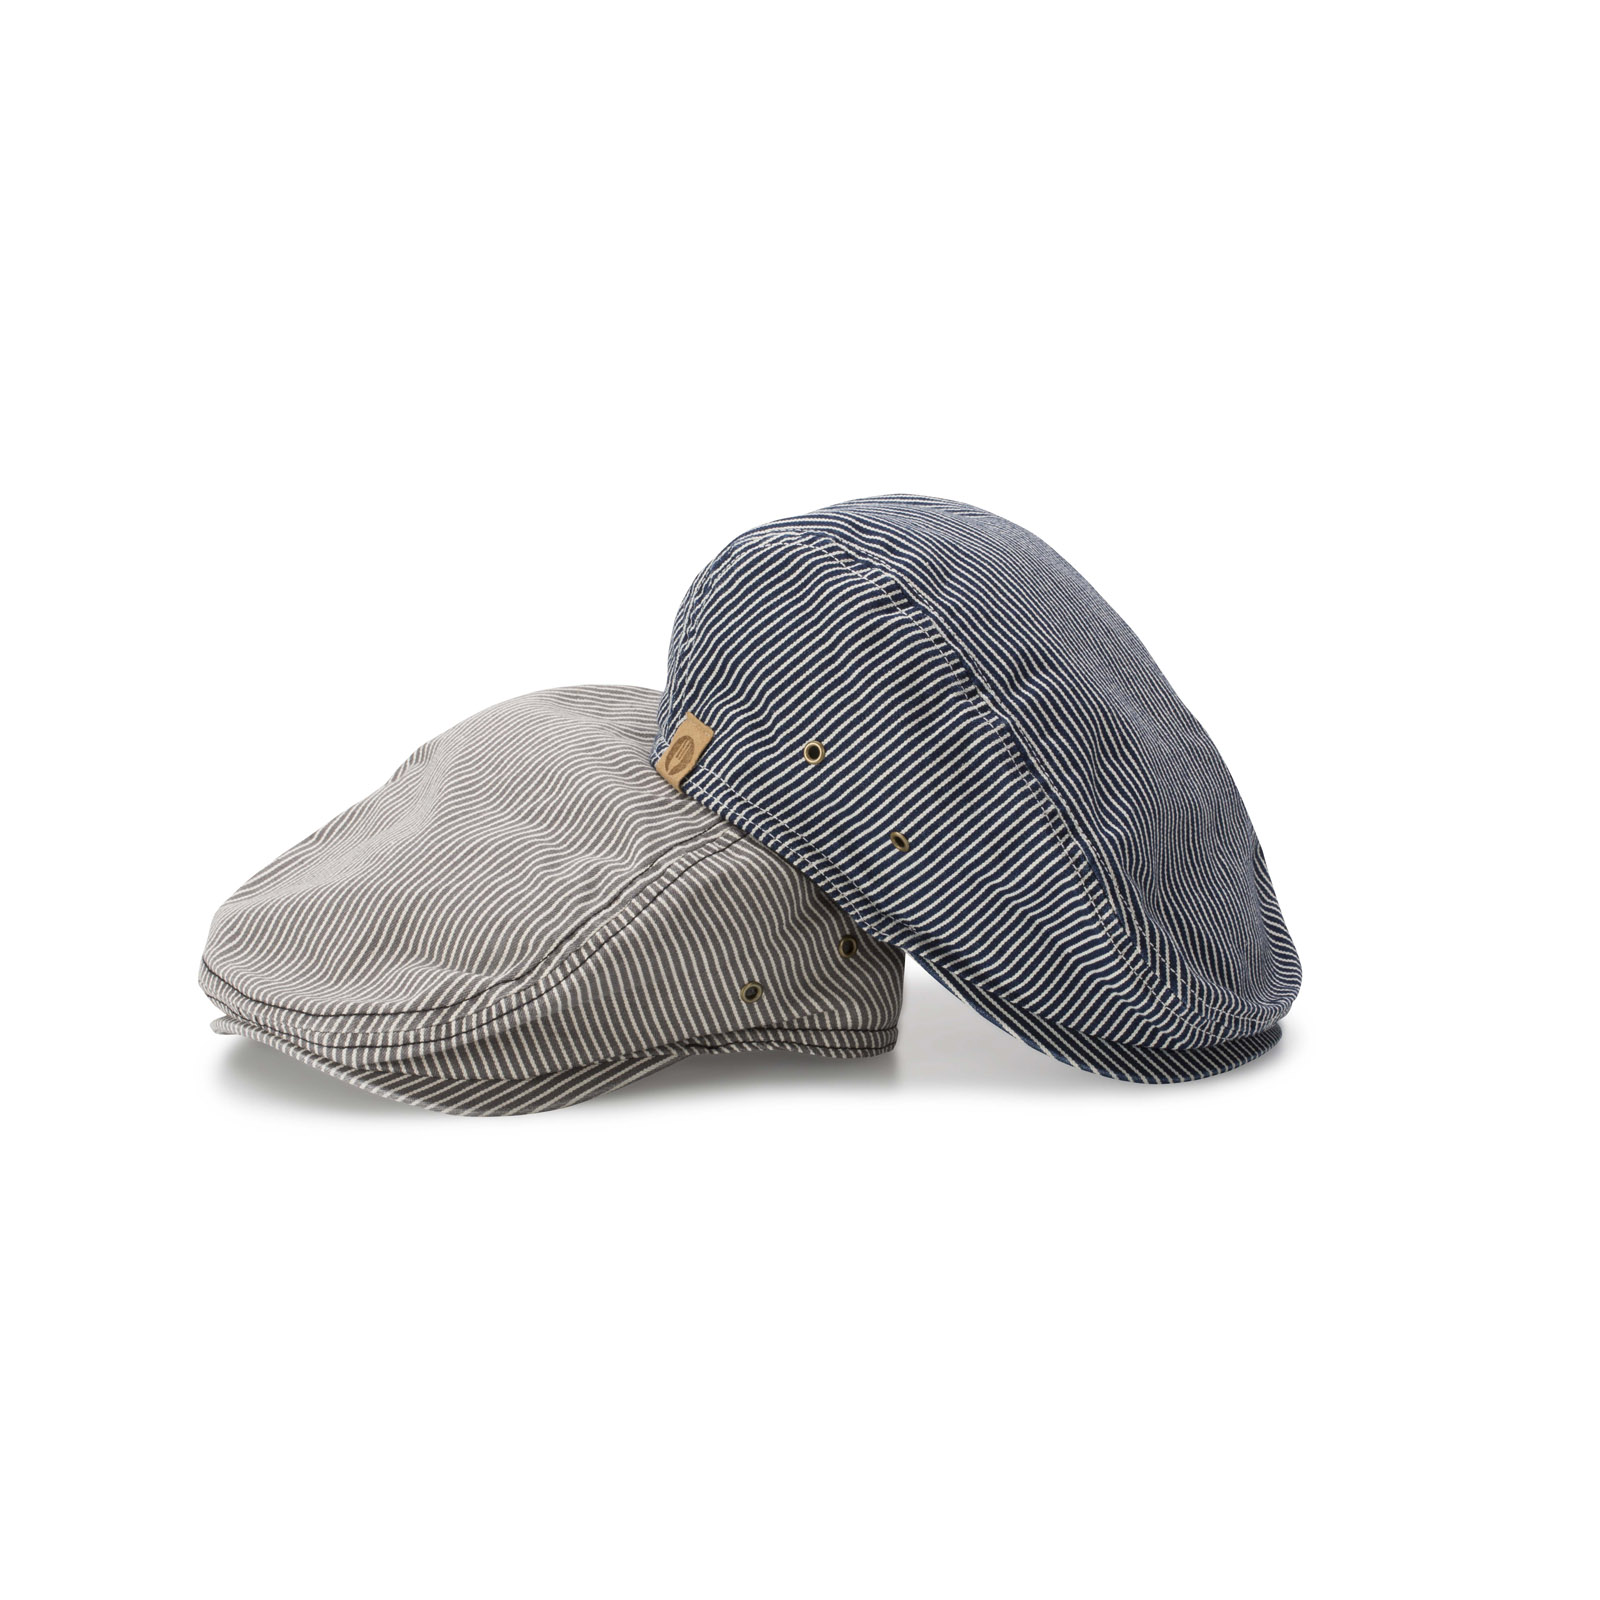 Chef Works HB007BLK0 chef's hat